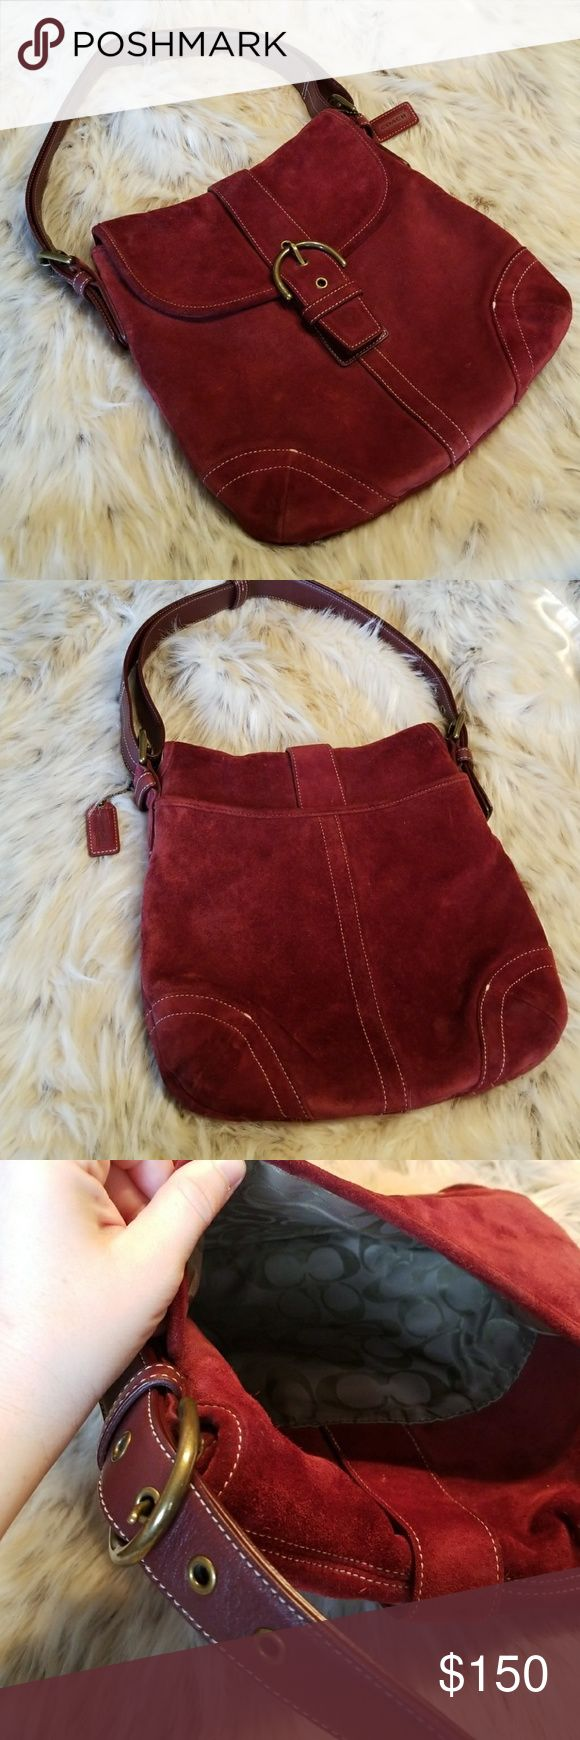 COACH VINTAGE SUEDE BURGUNDY CONVERTIBLE BAG 9482 Vintage Coach Rustic Red Suede Leather Buckle Front Shoulder Bag / Style 9482 / EUC This is a beautiful suede leather buckle bag by Coach. The suede is complimented with light contrast stitching. Suede bags are hard to find in good shape; this bag is in great vintage condition. No odors, stains, or leather damage atypical for a vintage bag (see pictures).This bag features a convertible strap to wear the bag as a Crossbody or a Shoulder Bag…